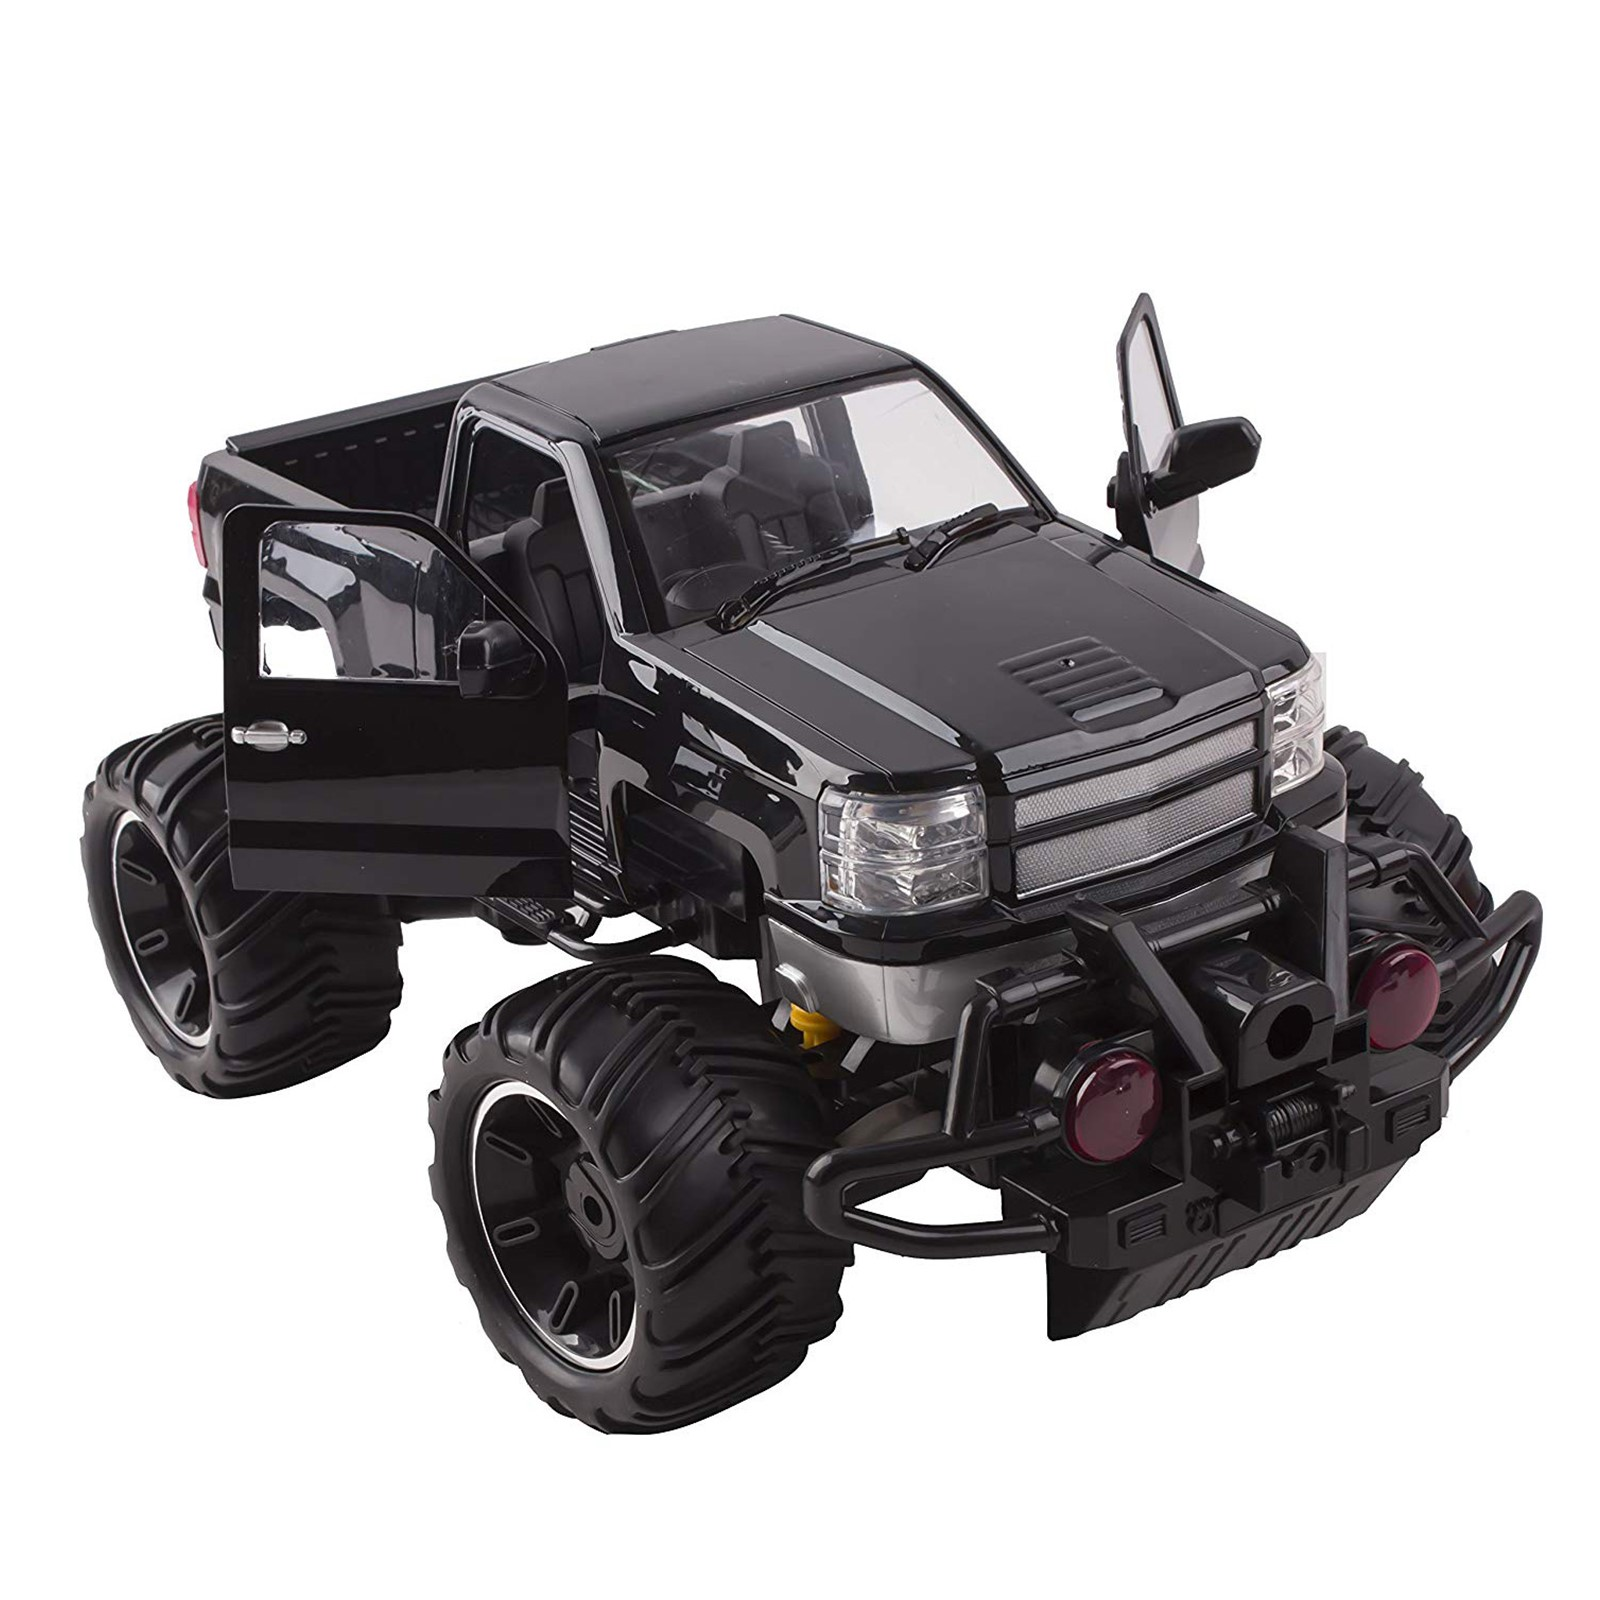 Big Wheel Beast RC Monster Truck Remote Control Doors Opening Car Light Up LED Headlights Ready to Run INCLUDES RECHARGEABLE BATTERY 1:14 Size Off-Road Pick Up Buggy Toy (Black)